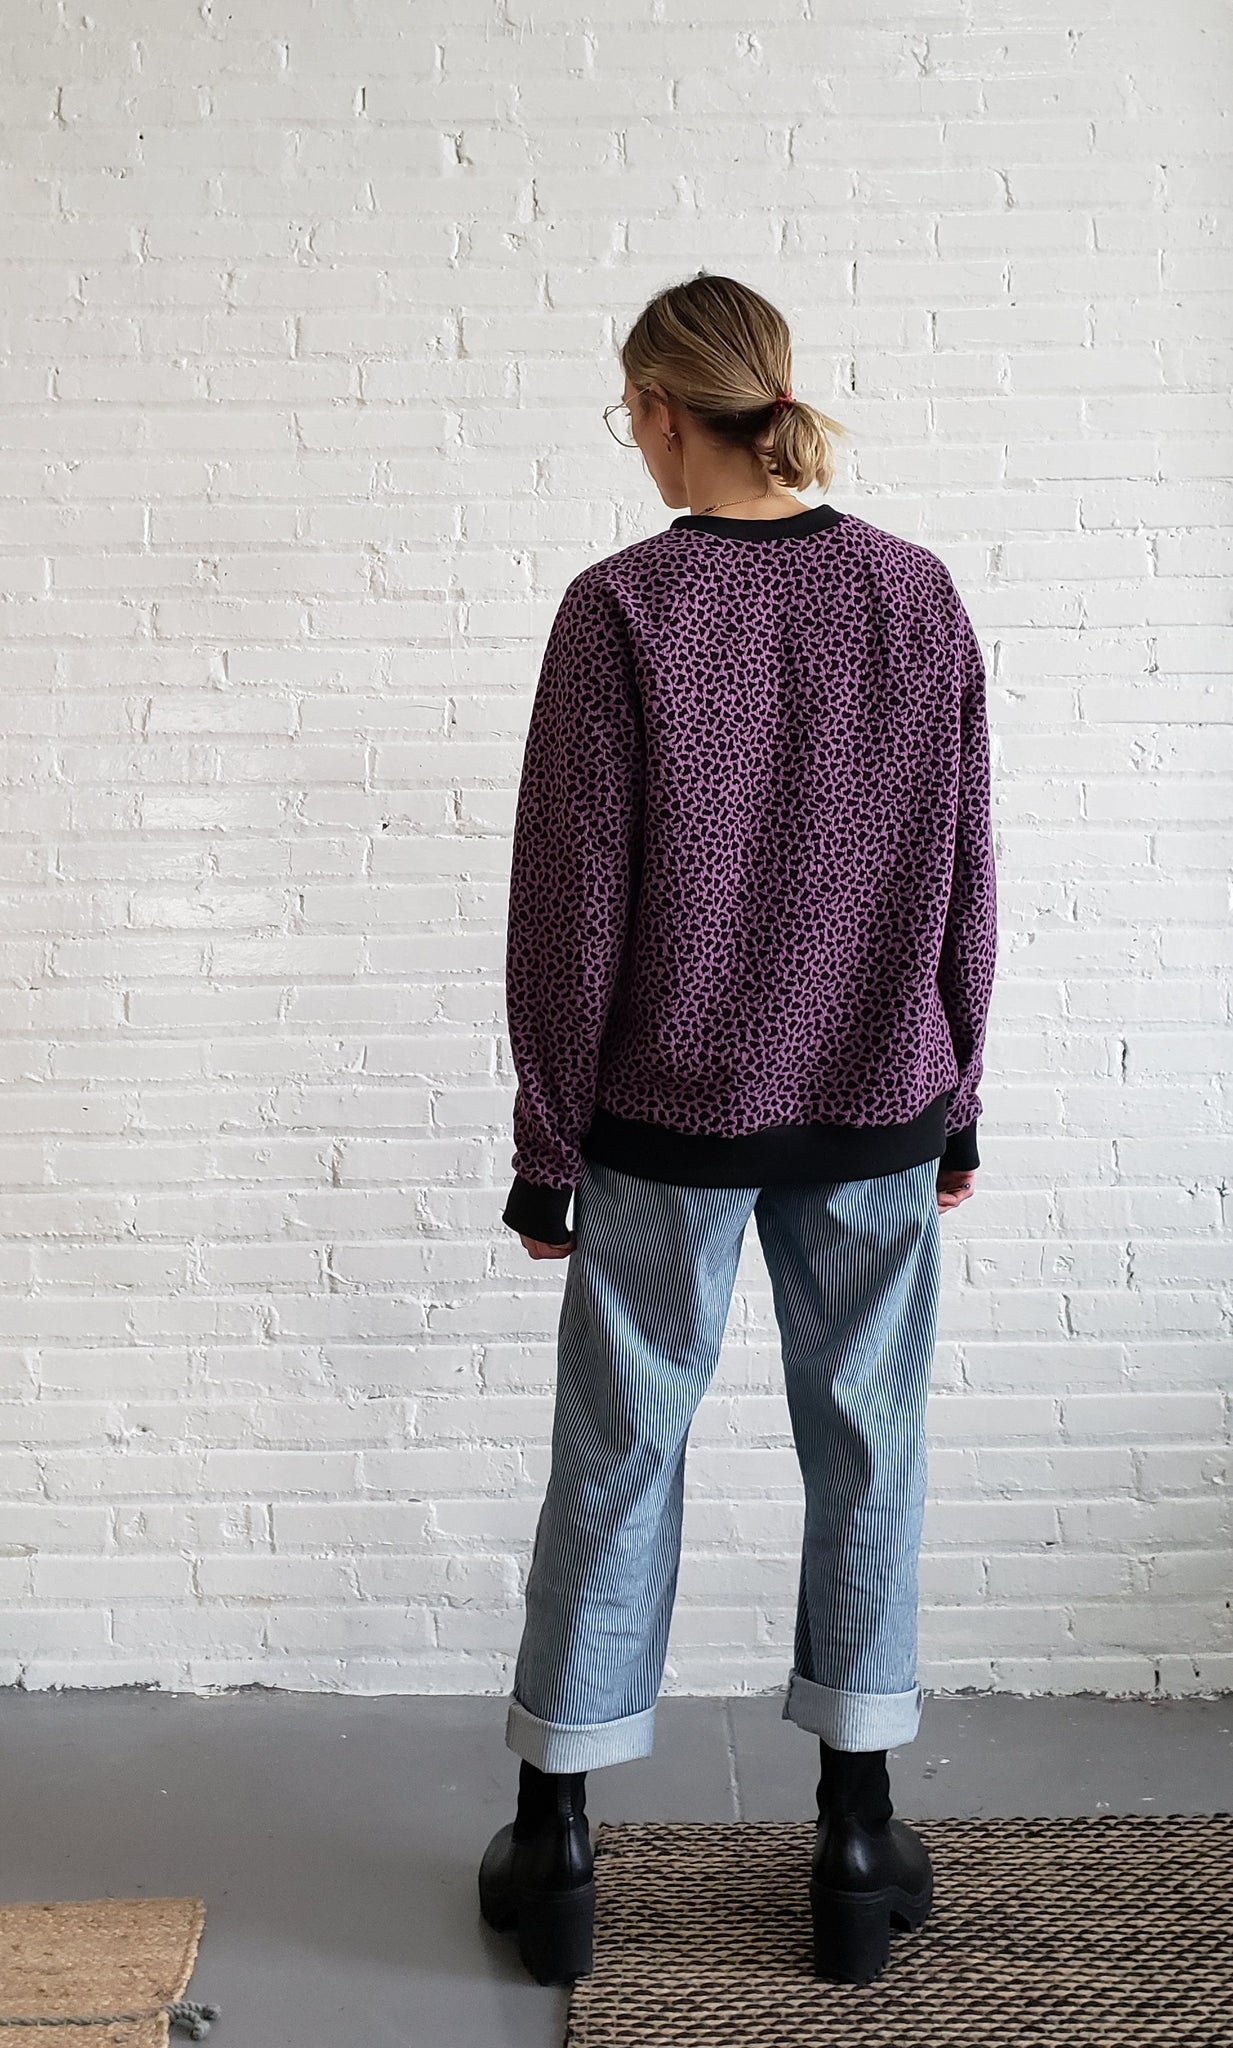 woman wearing purple and black patterned sweatshirt with blue jeans and black boots, facing away from camera